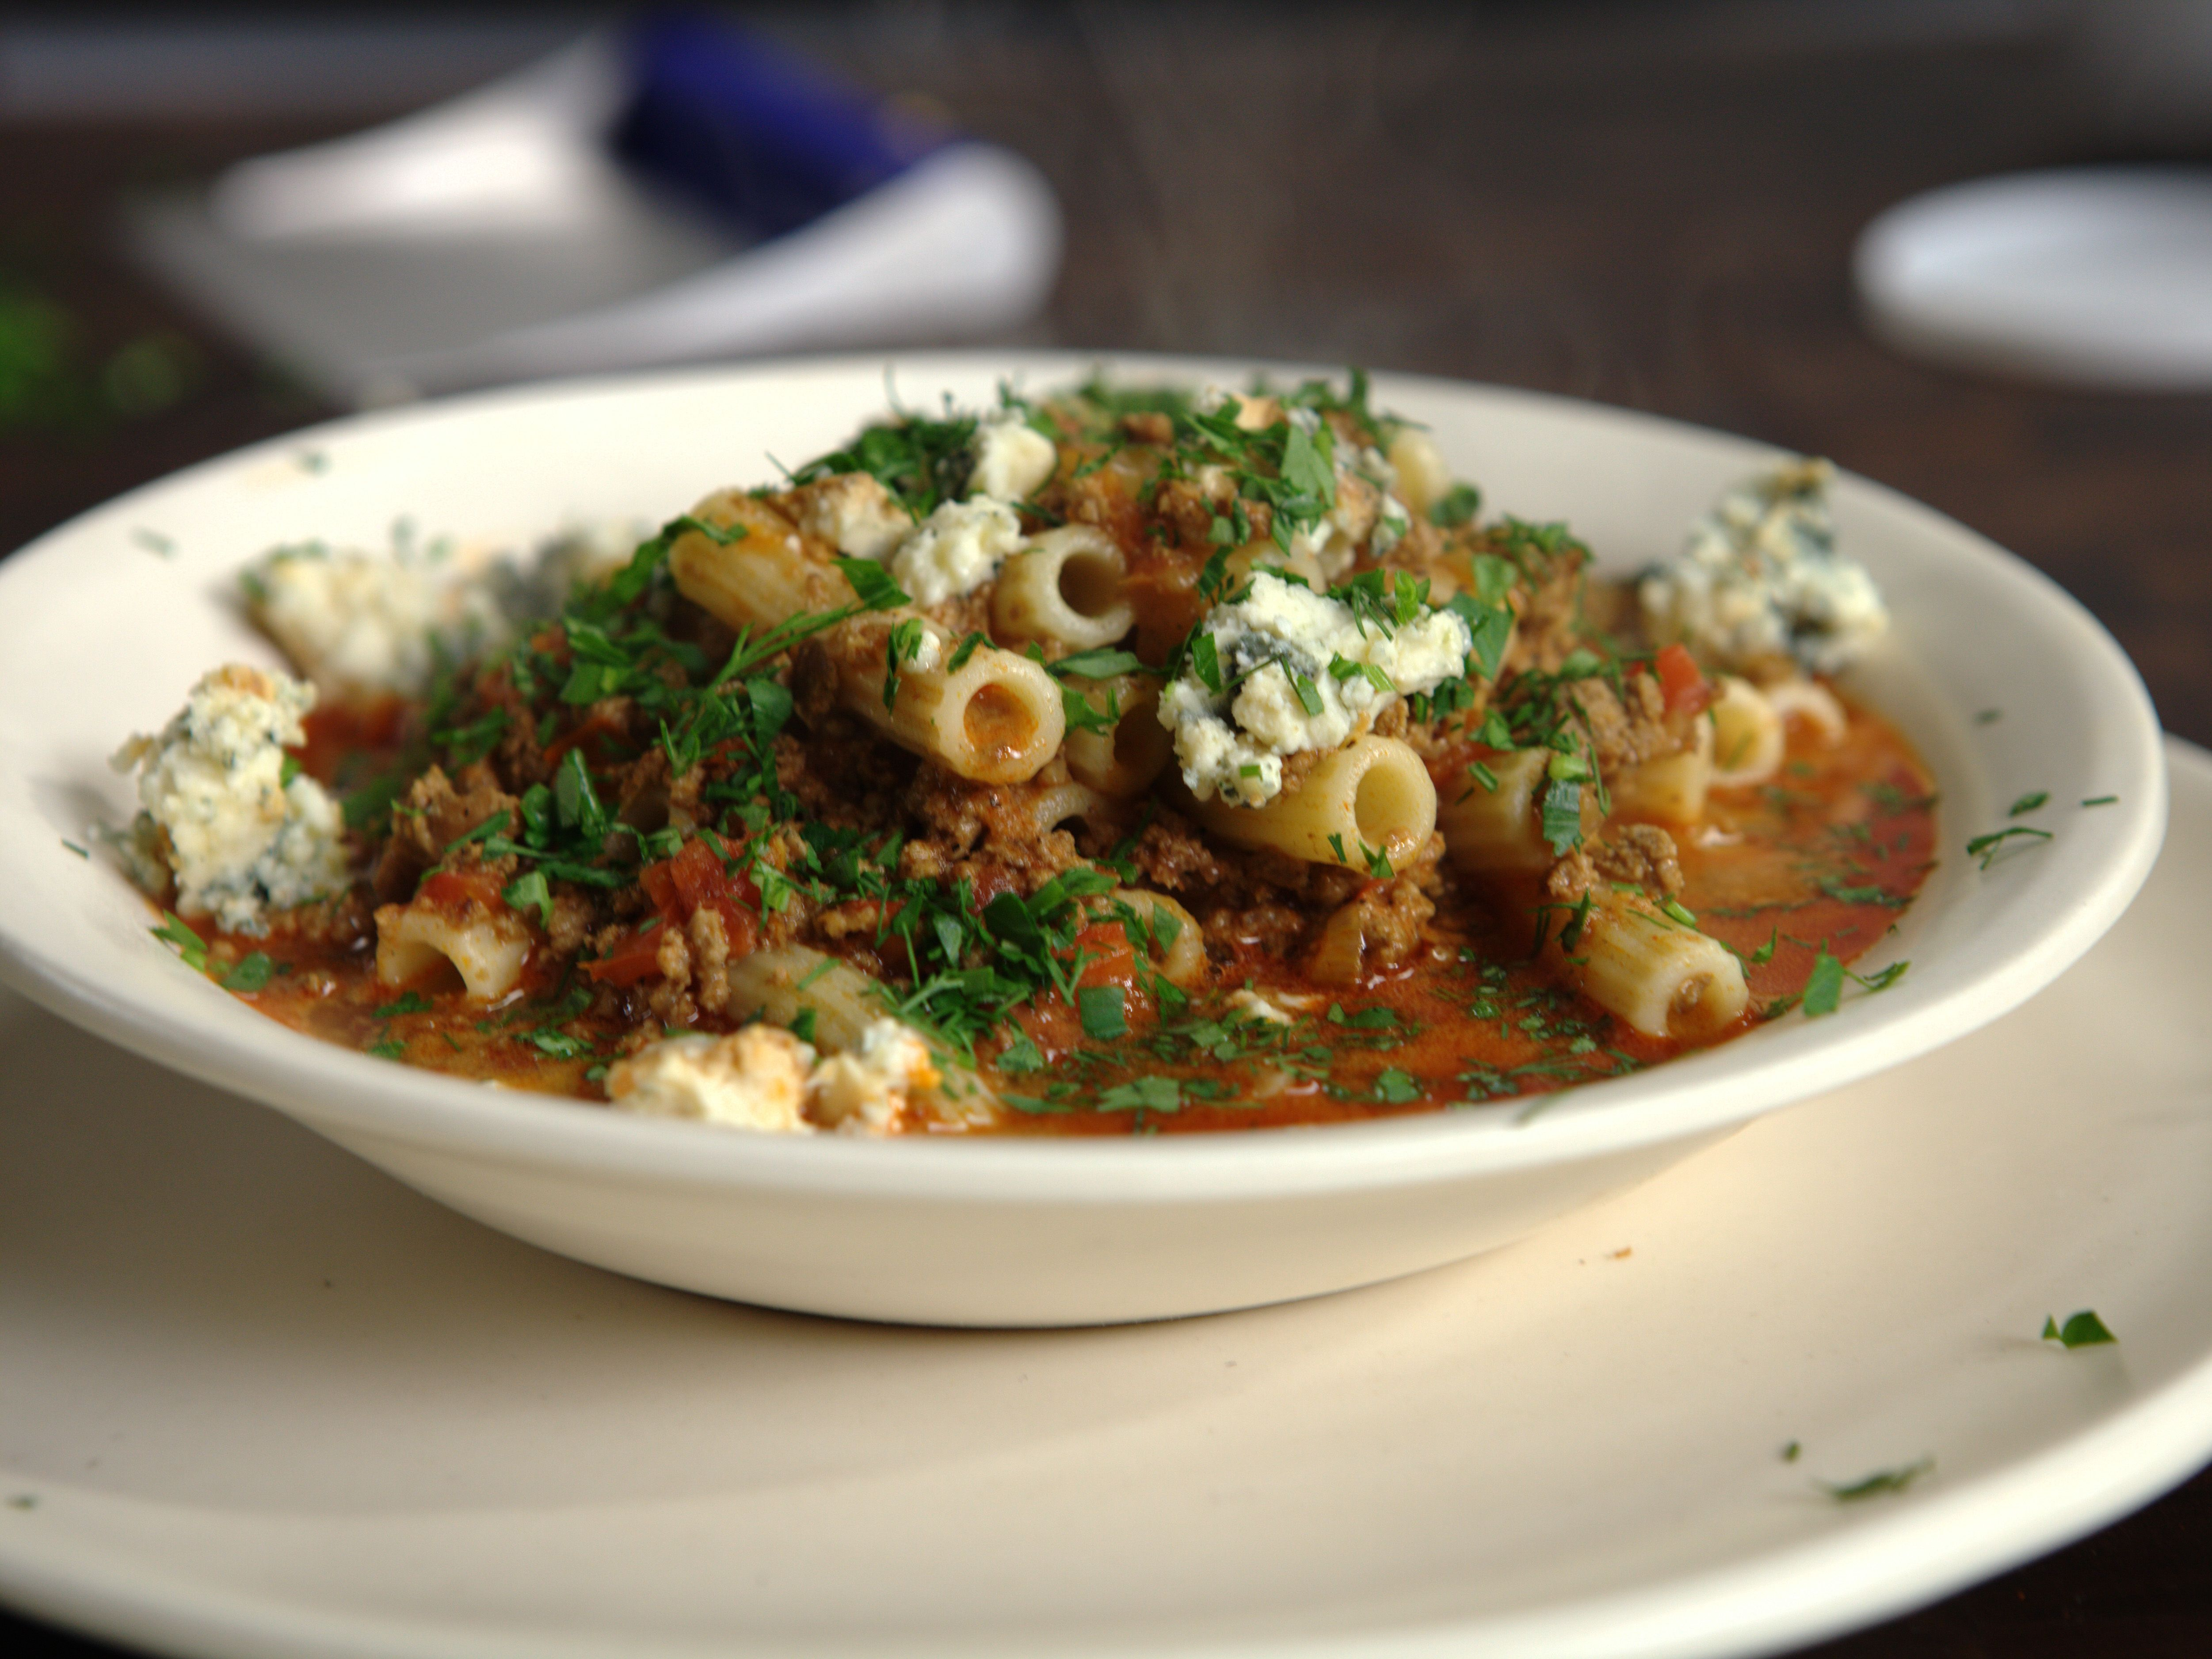 Beef goulash with blue cheese recipe blue cheese recipes beef beef goulash with blue cheese recipe blue cheese recipes beef goulash and goulash forumfinder Images